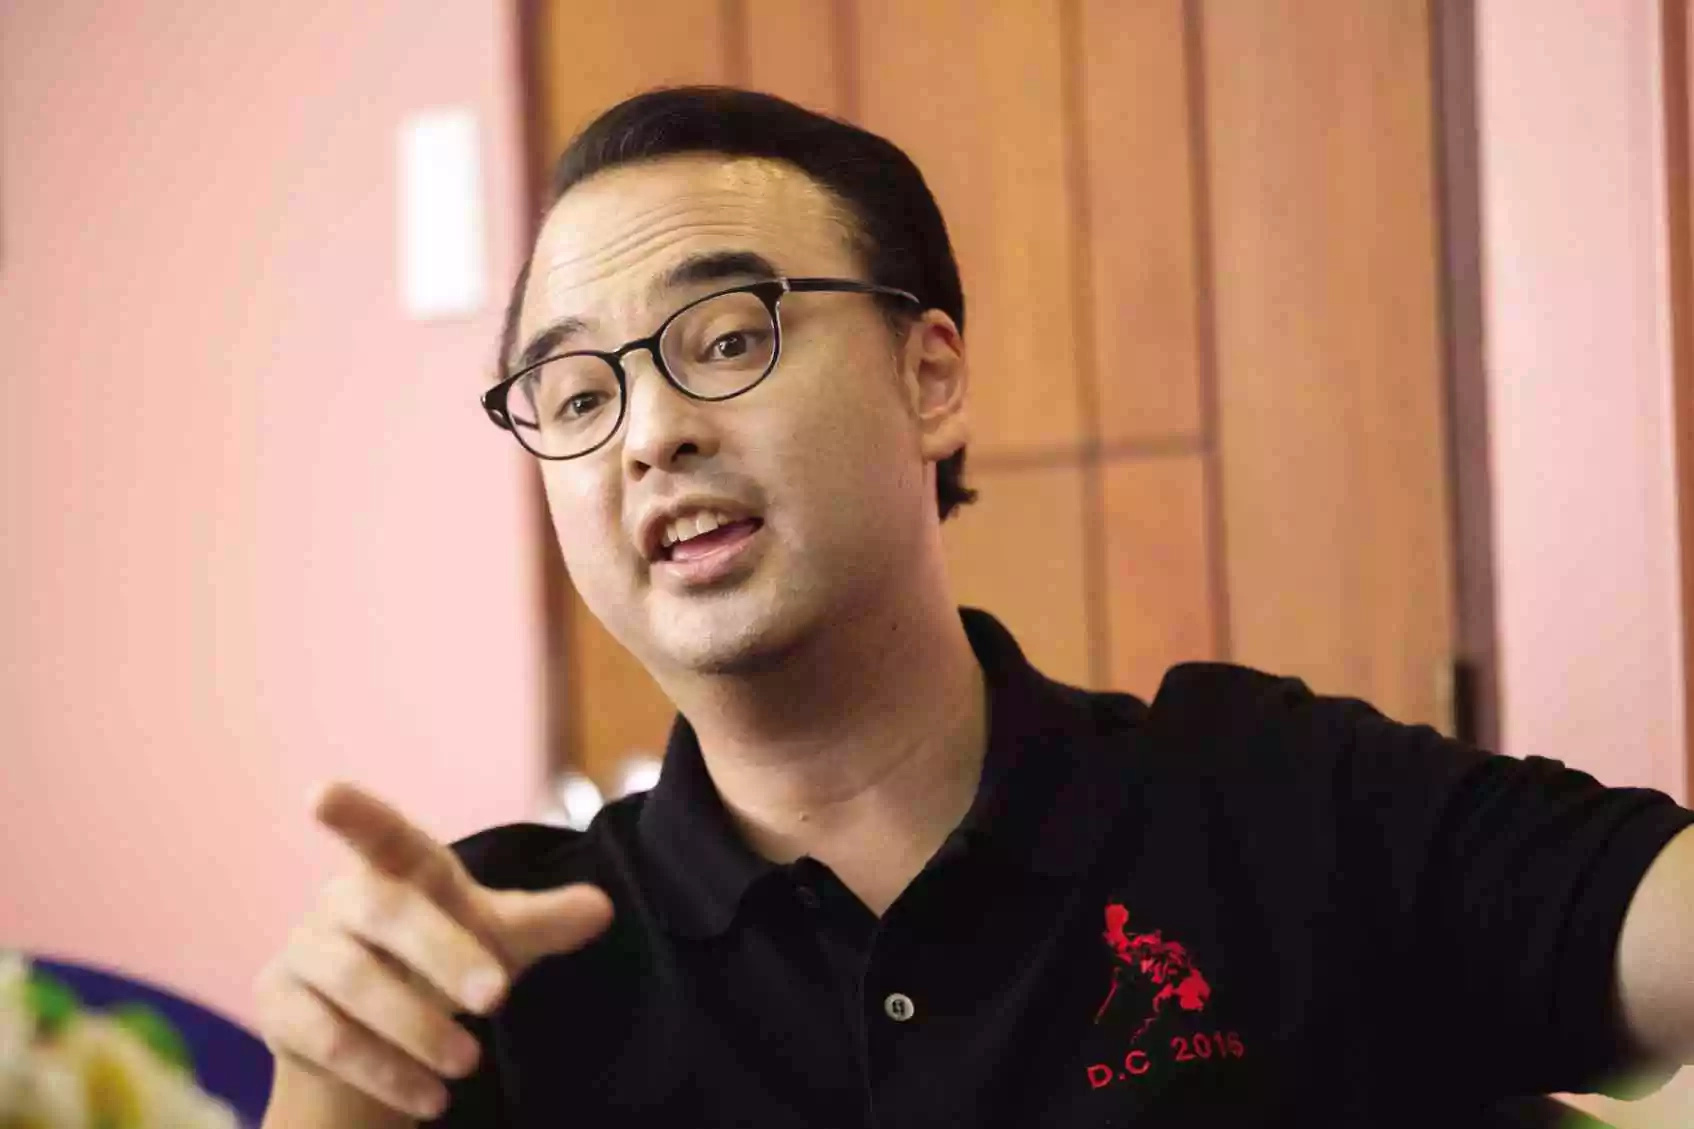 cayetano submits p50 000 month police salary proposal ▷ kami com ph cayetano submits p50 000 month police salary proposal